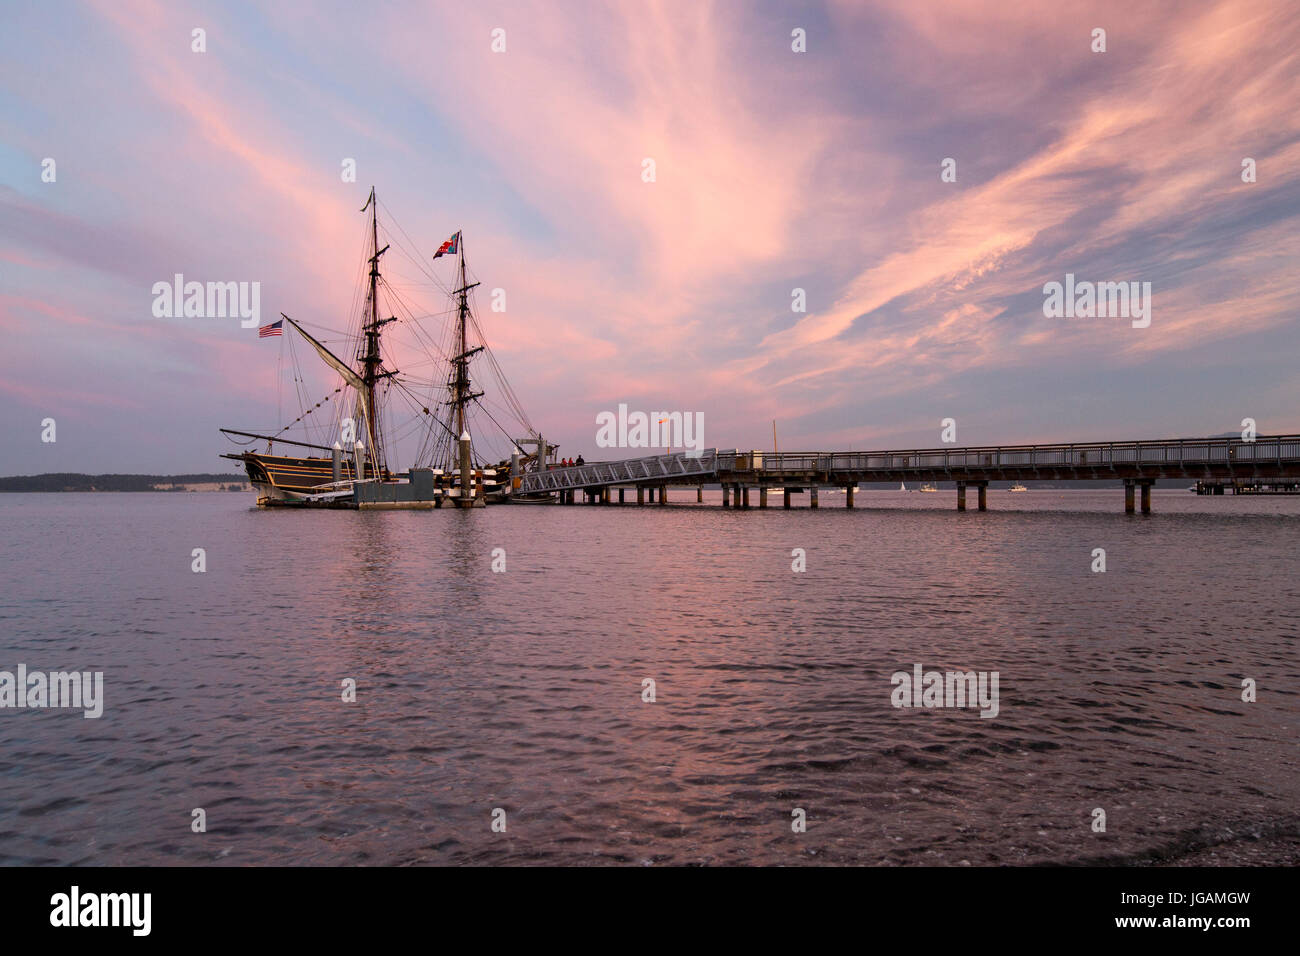 Port Townsend sunset with wooden sailing boat Lady Washington. - Stock Image